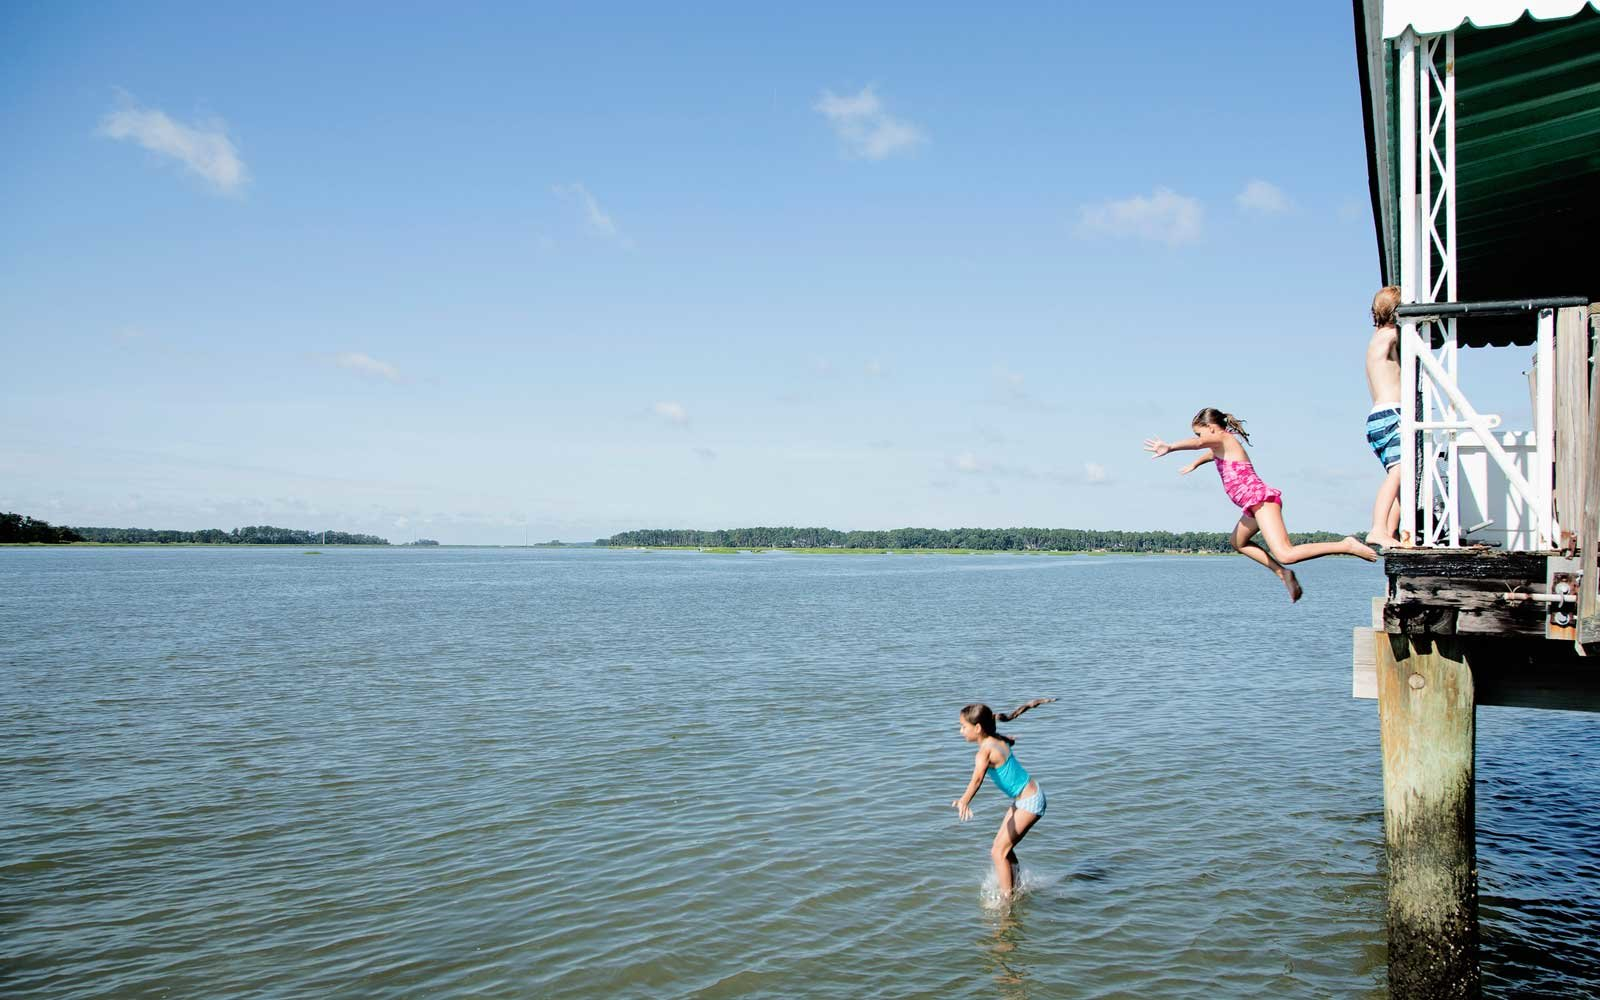 Kids jumping from dock into river